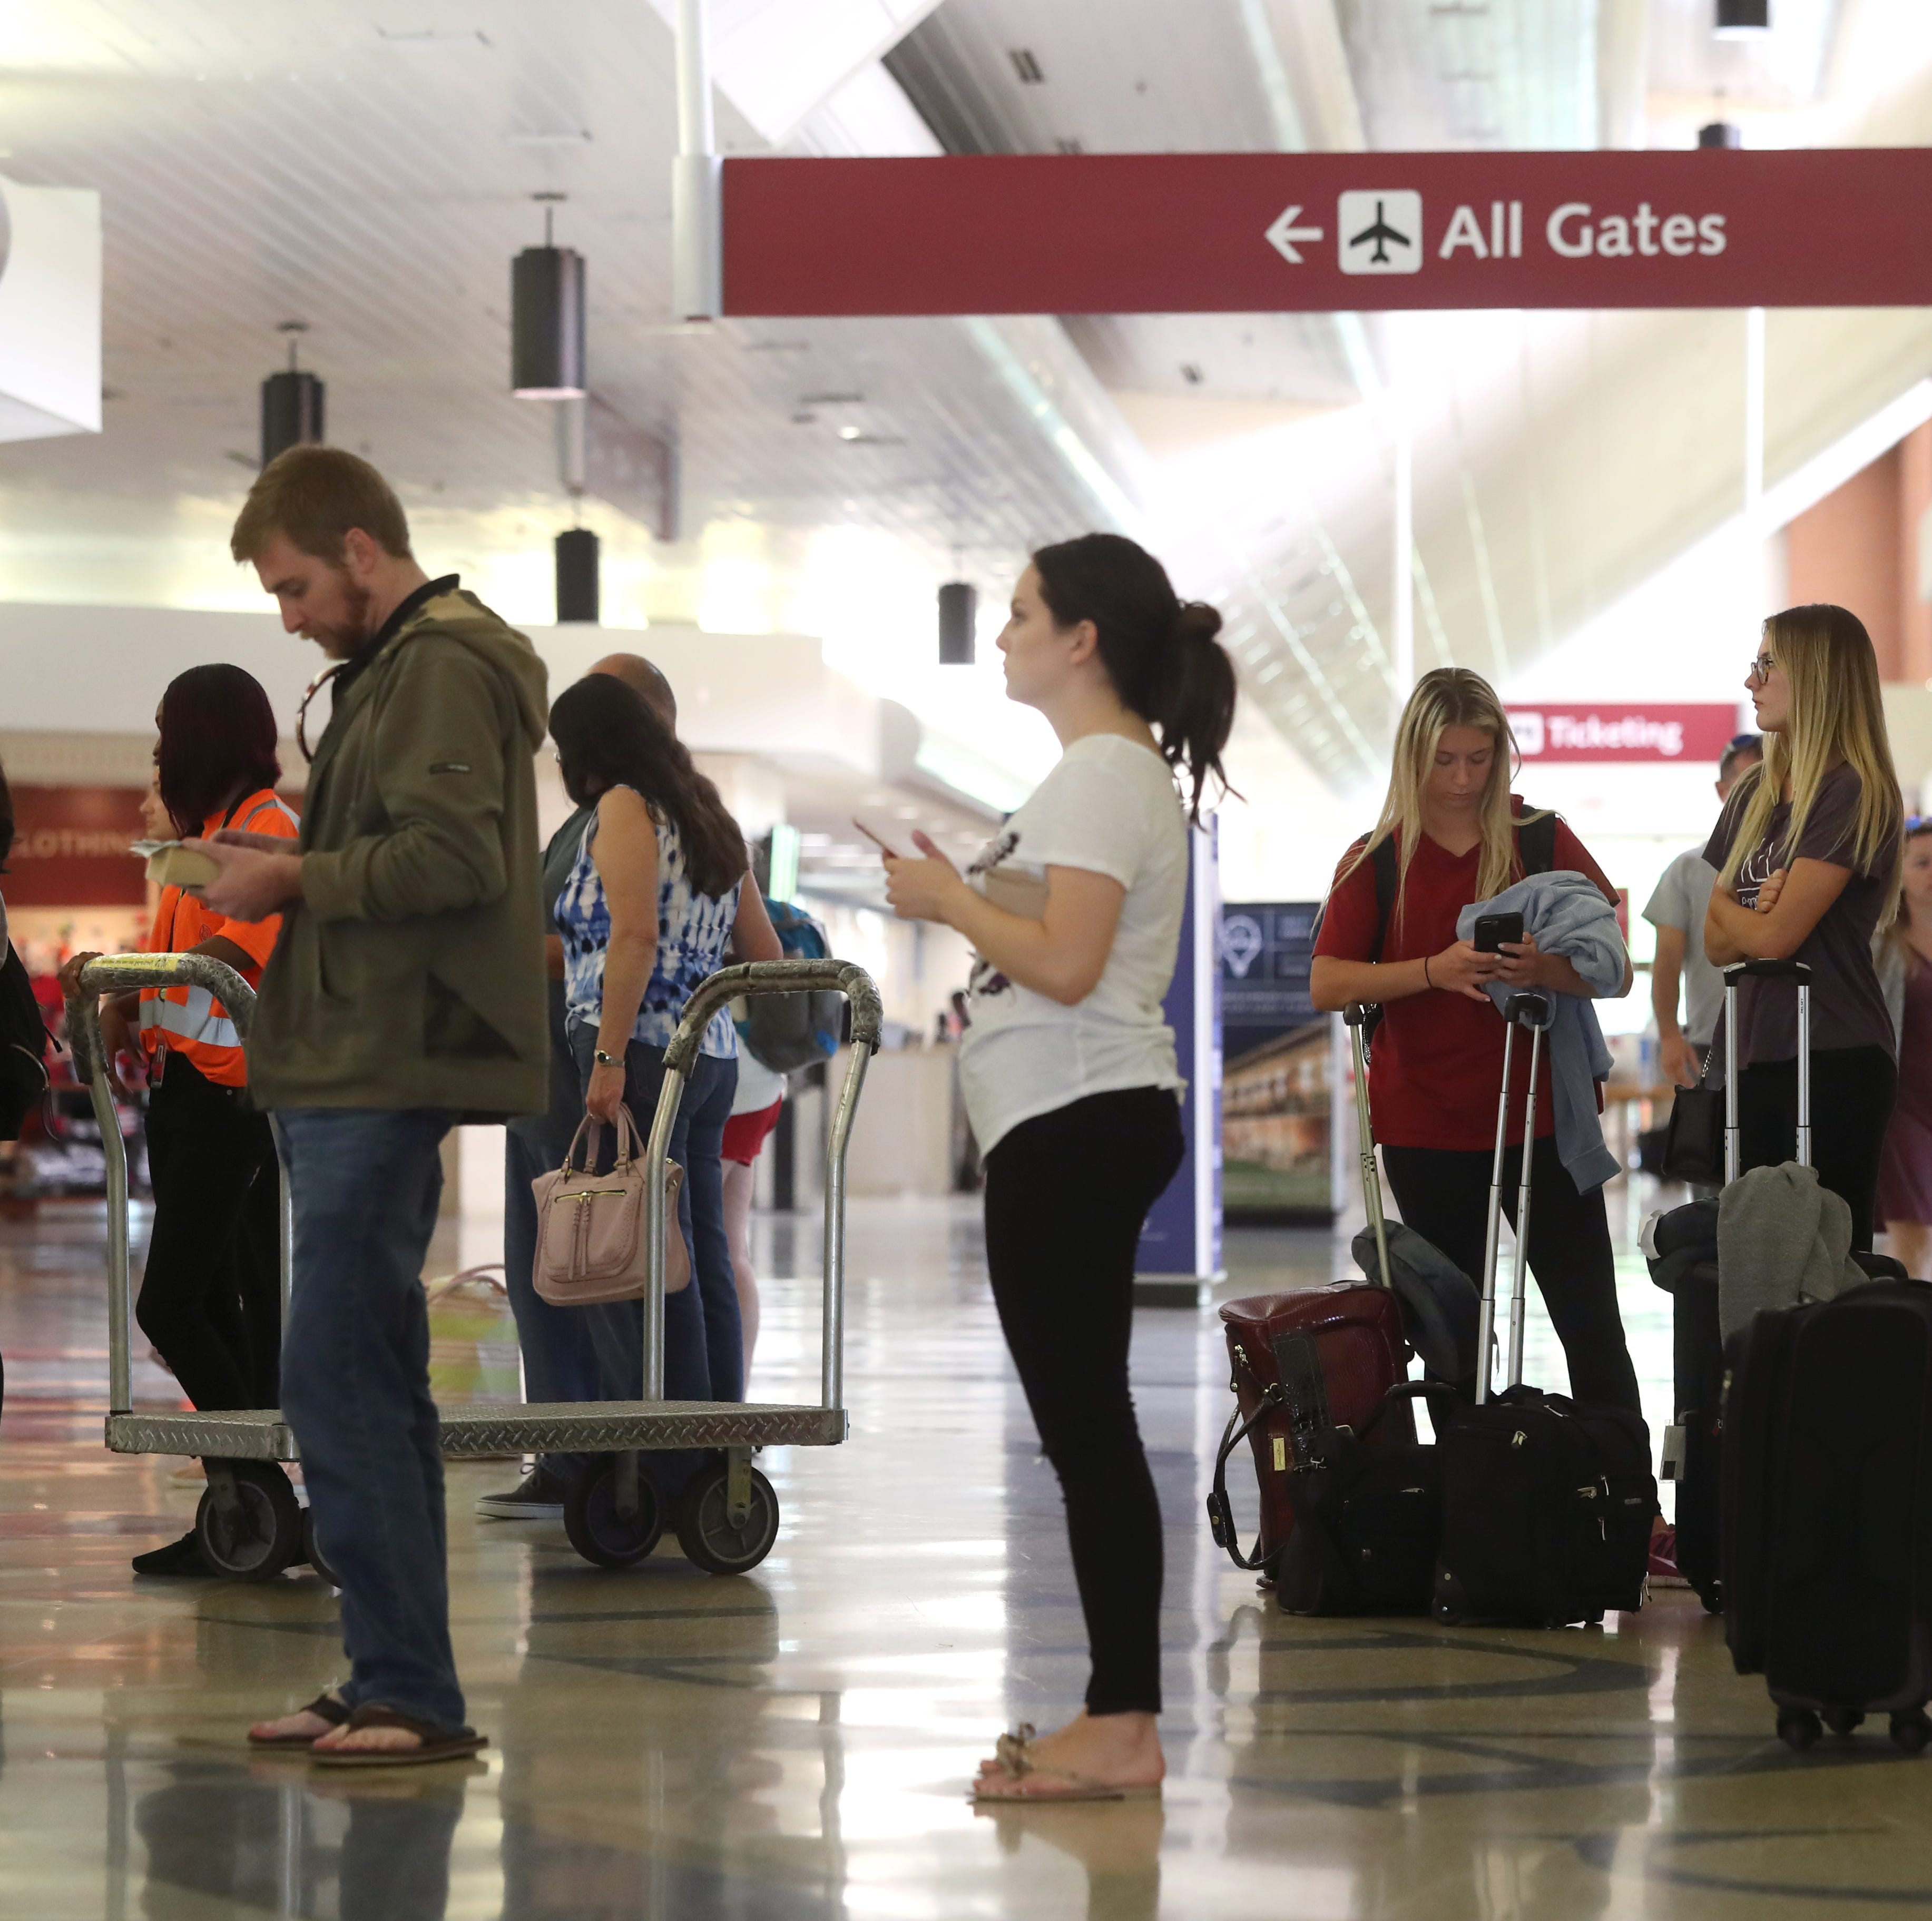 Long lines at TLH airport touch off angry social media posts